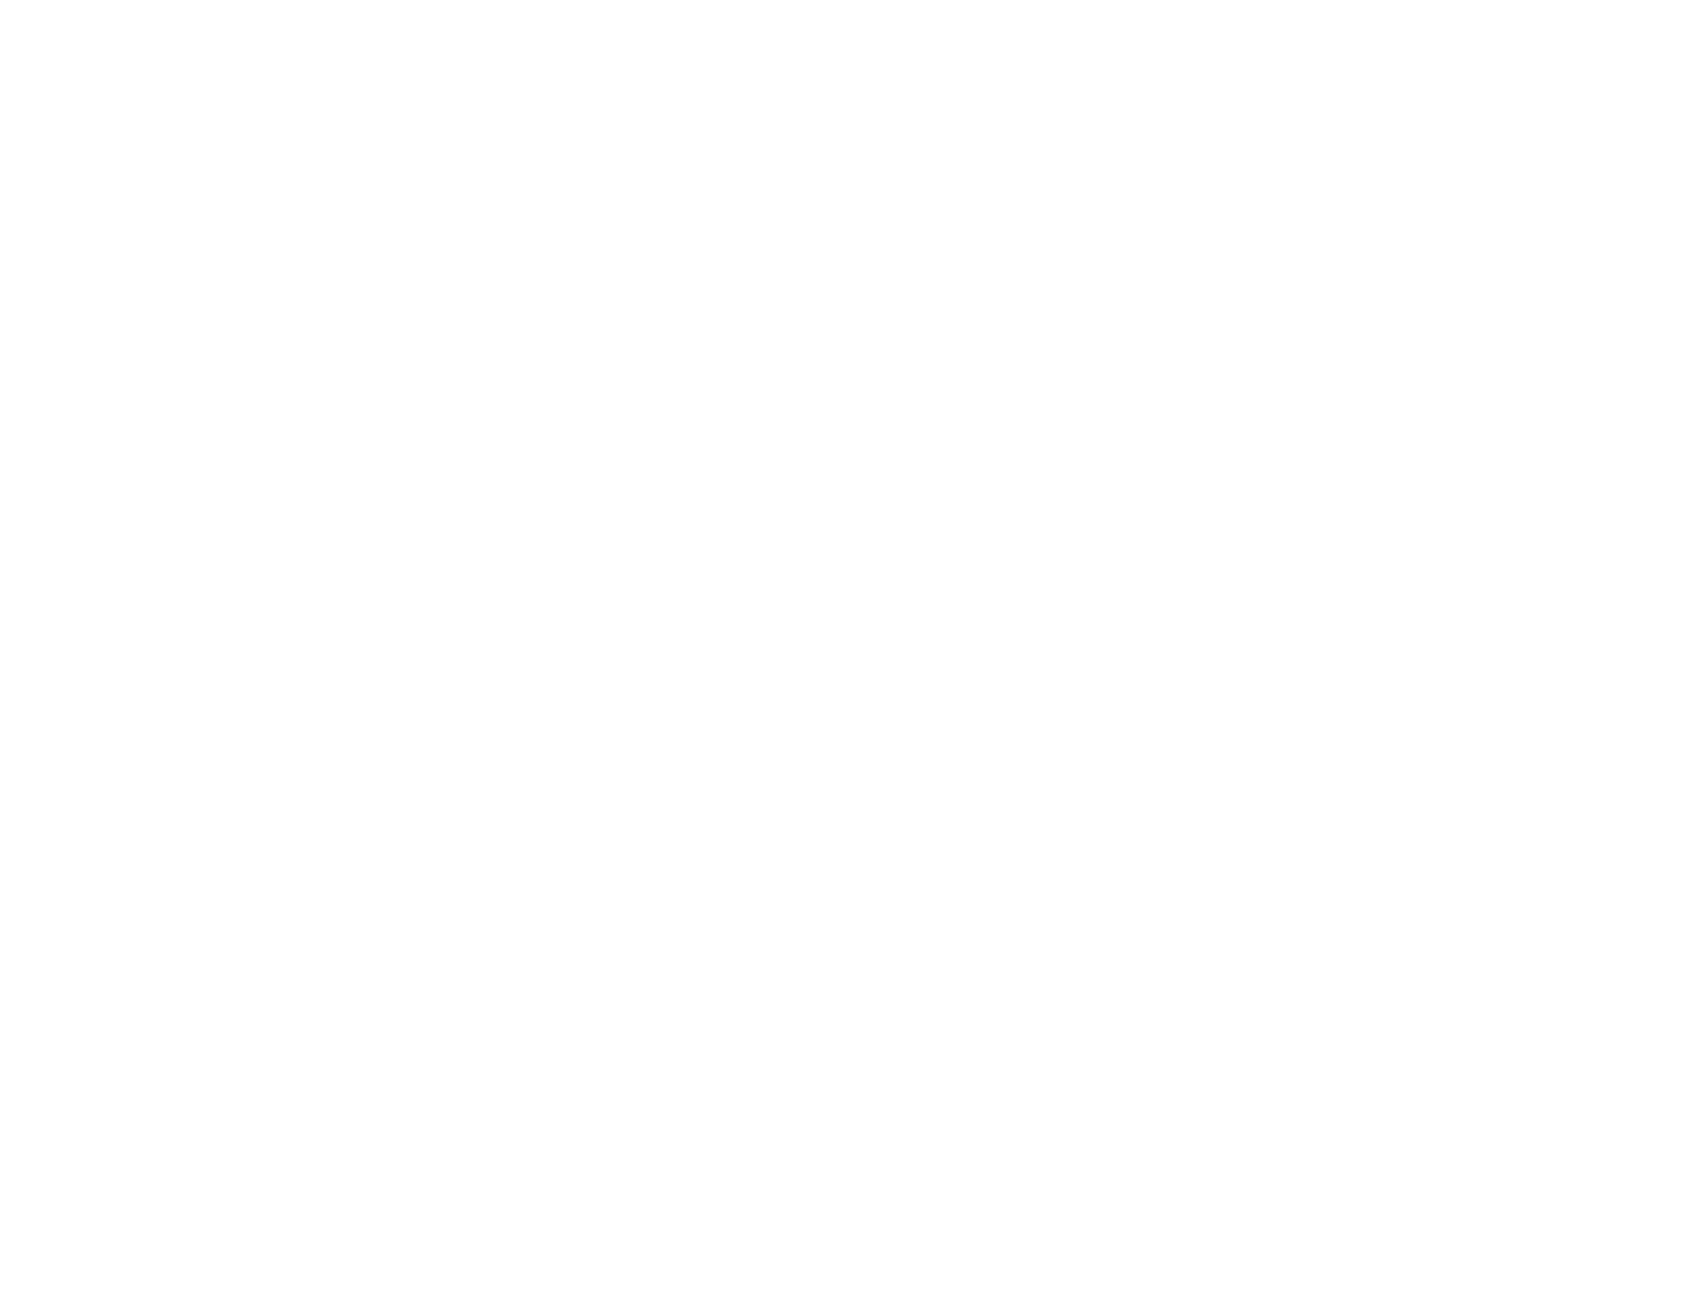 Waukesha Country Buslness Alliance